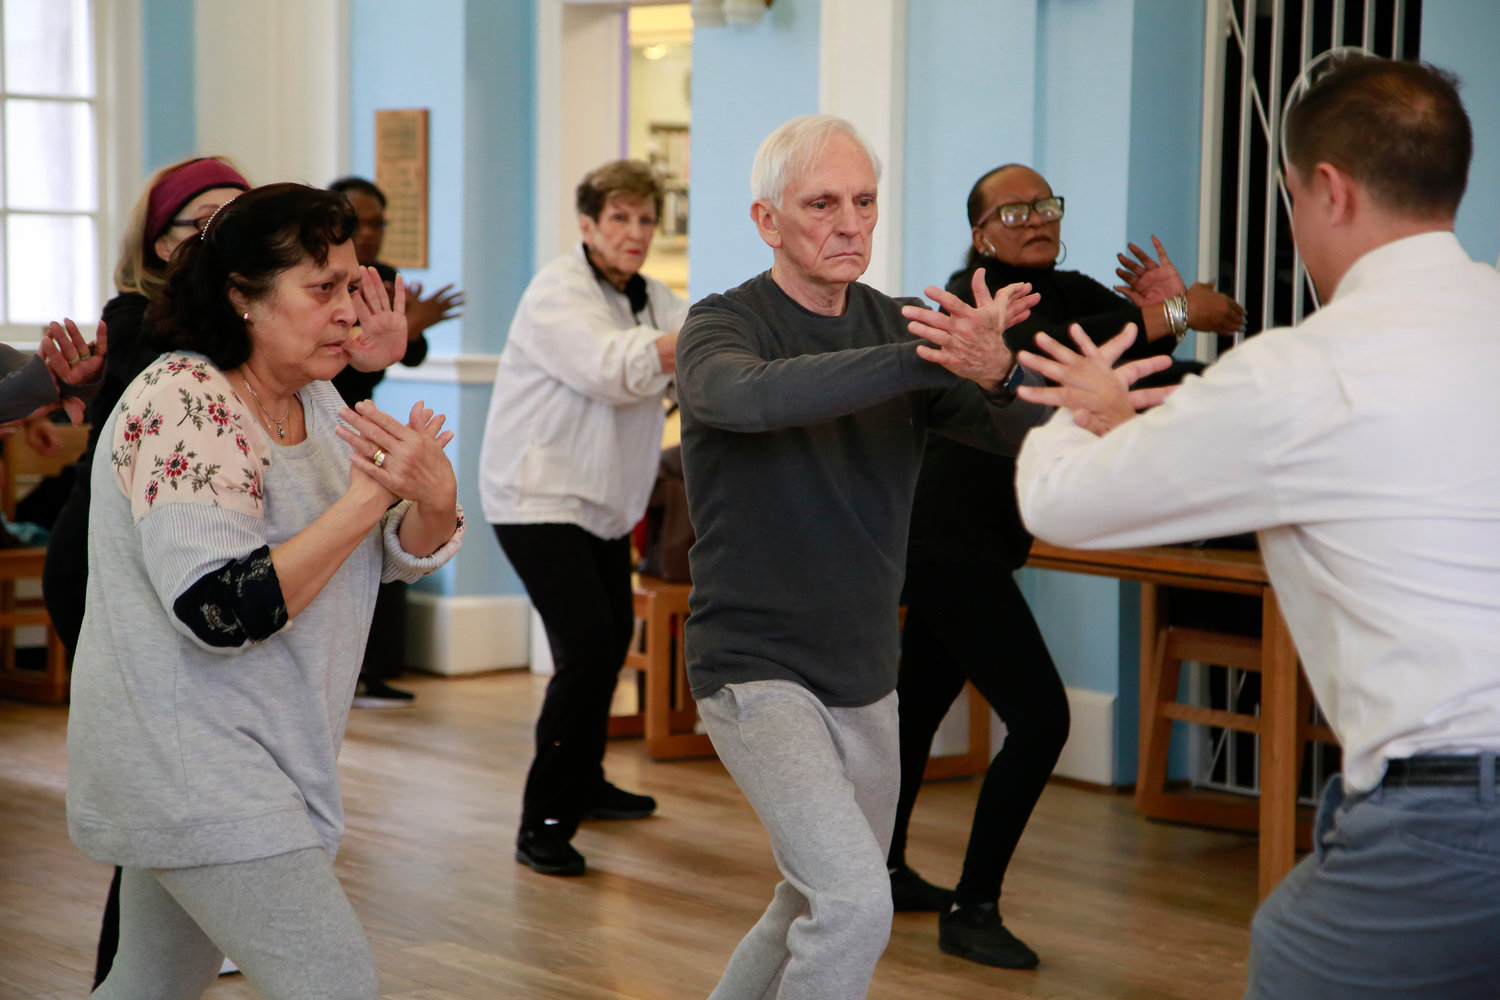 Tai chi students, Olga Marrell, left, and George Perfetto follow instructions during the ward off movement.